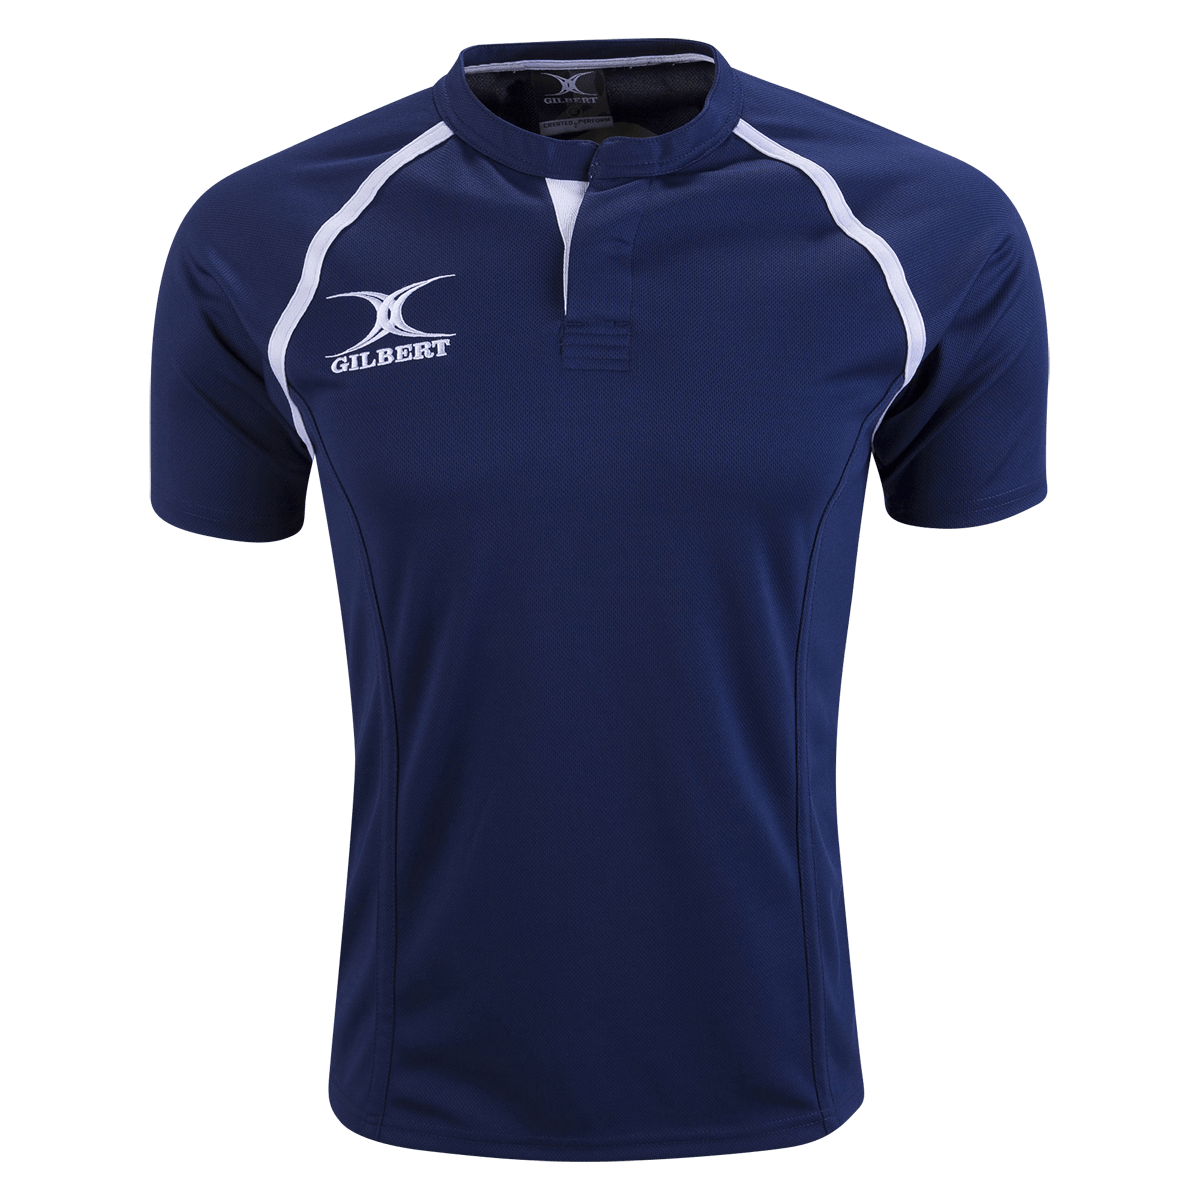 Gilbert Navy Xact Premier Rugby Jersey Front